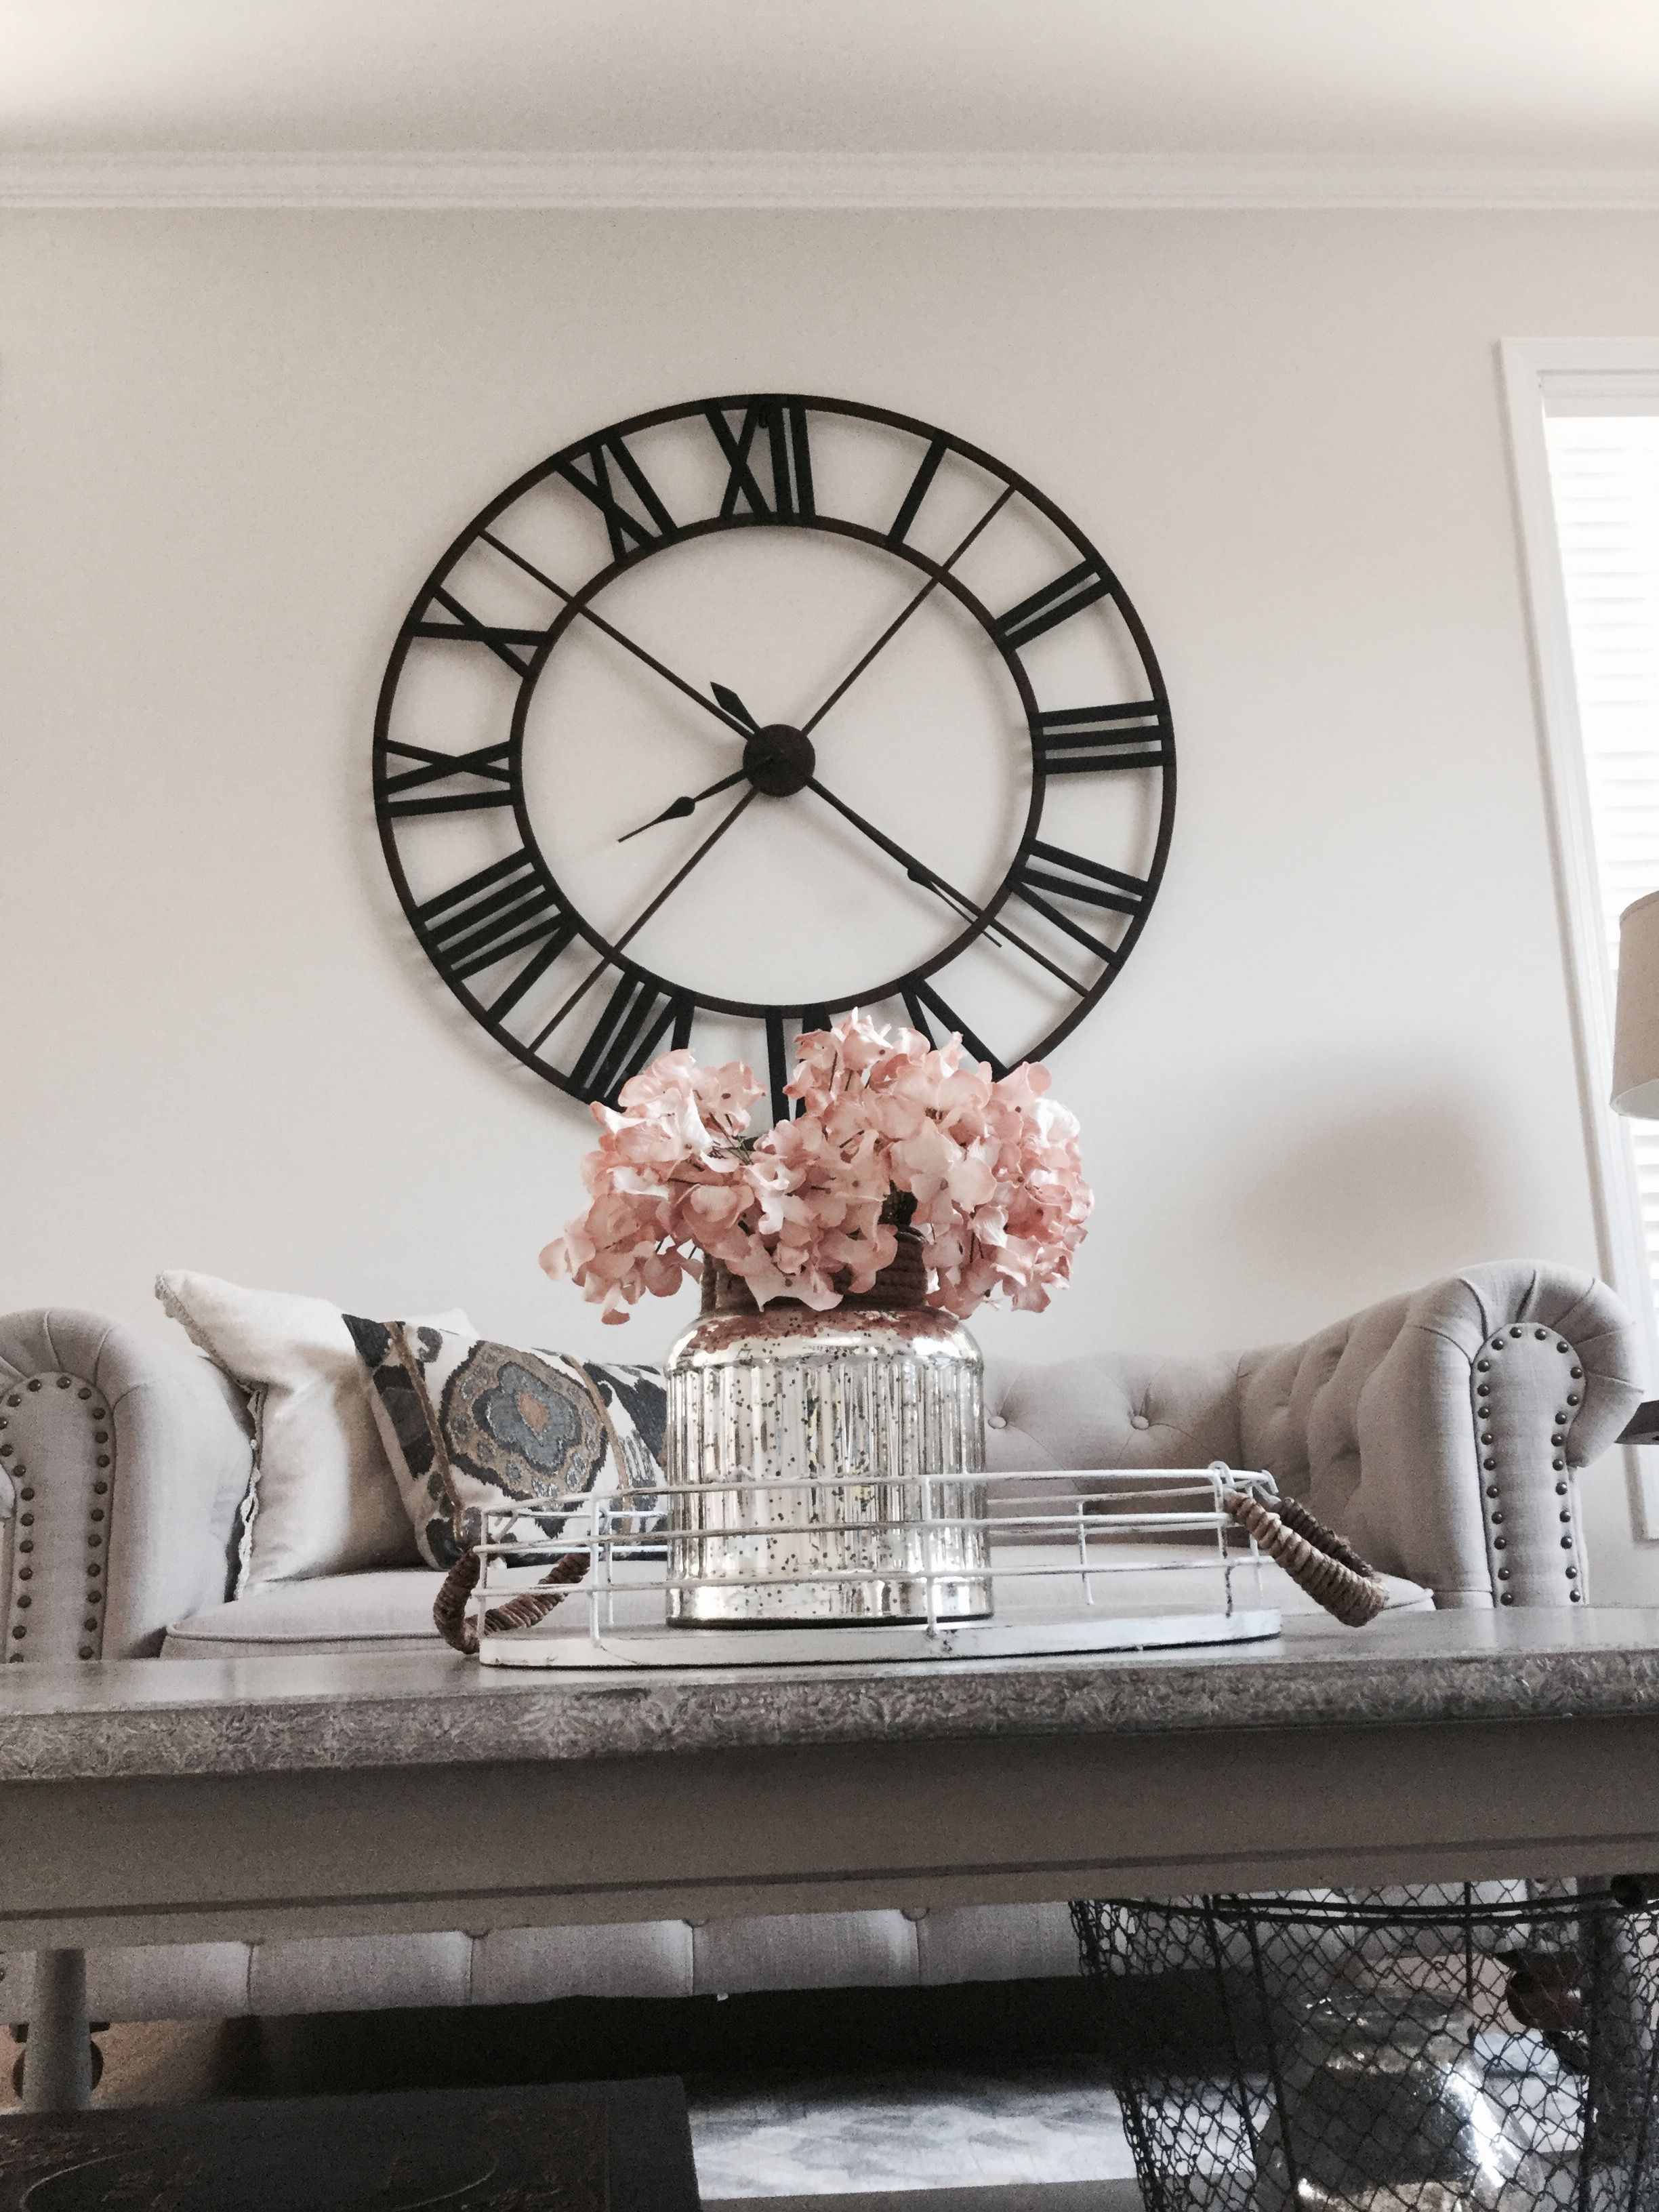 Details : Thelilliebag.com |decorating Ideas, Living Room Decor . Rustic  Decor Meets Glam, Oversized Clock , Tufted Sofa , Gray And Blush Decor.